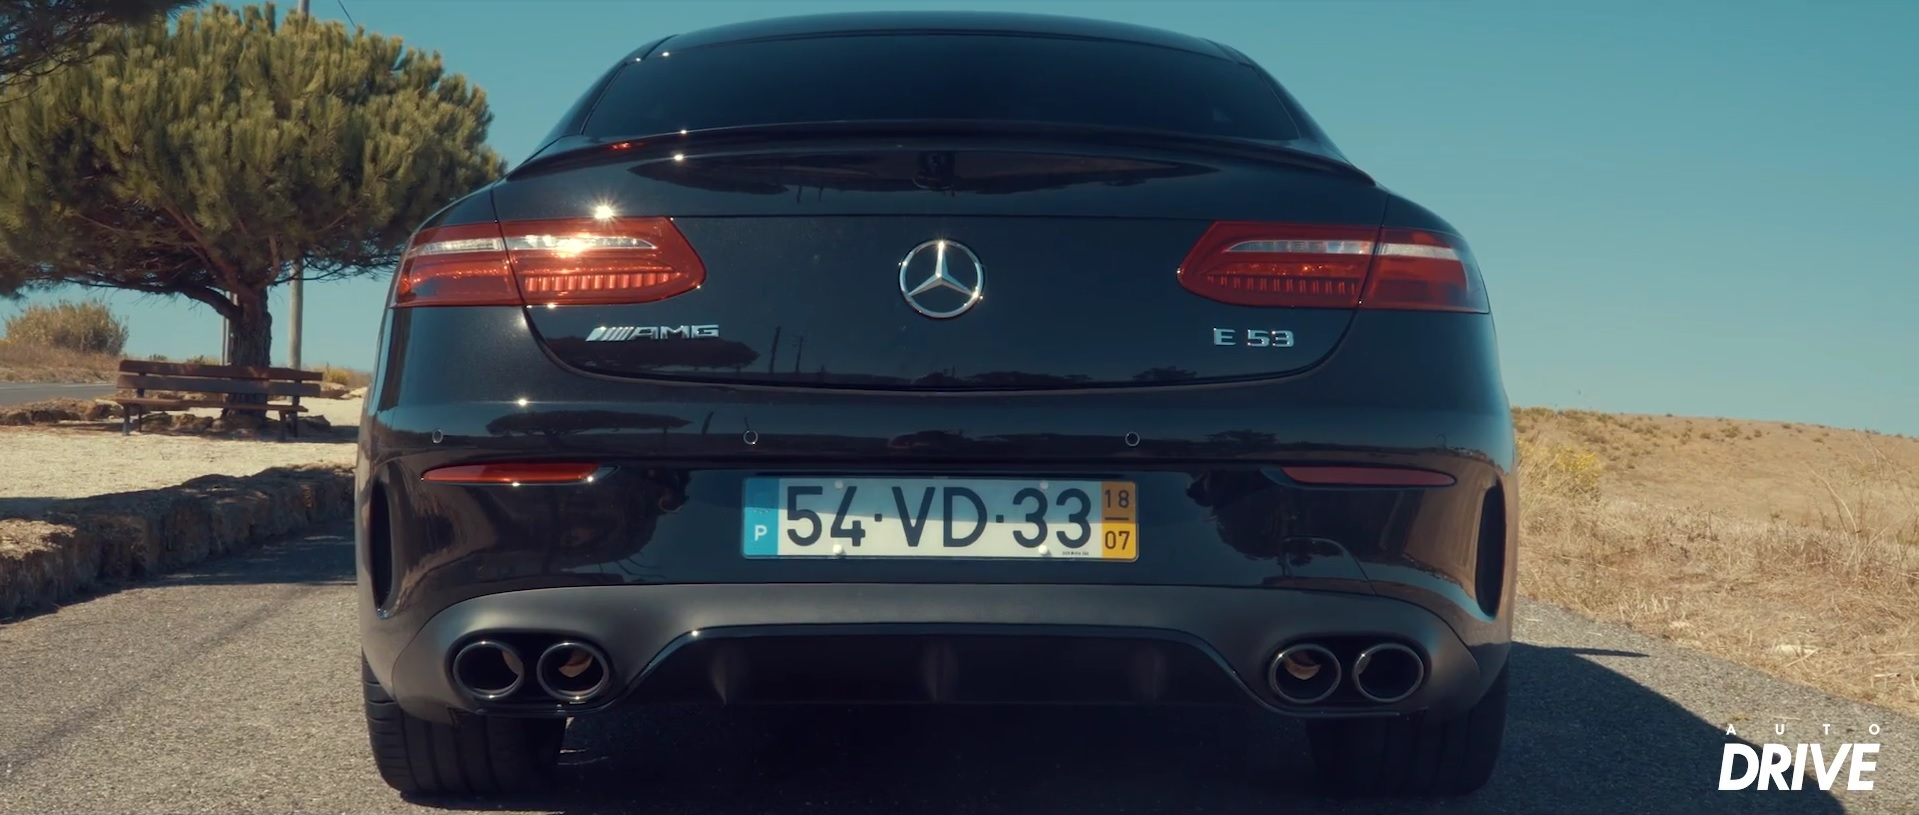 Veja o vídeo do Mercedes-AMG E53 4Matic+ Coupé no nosso canal do Youtube